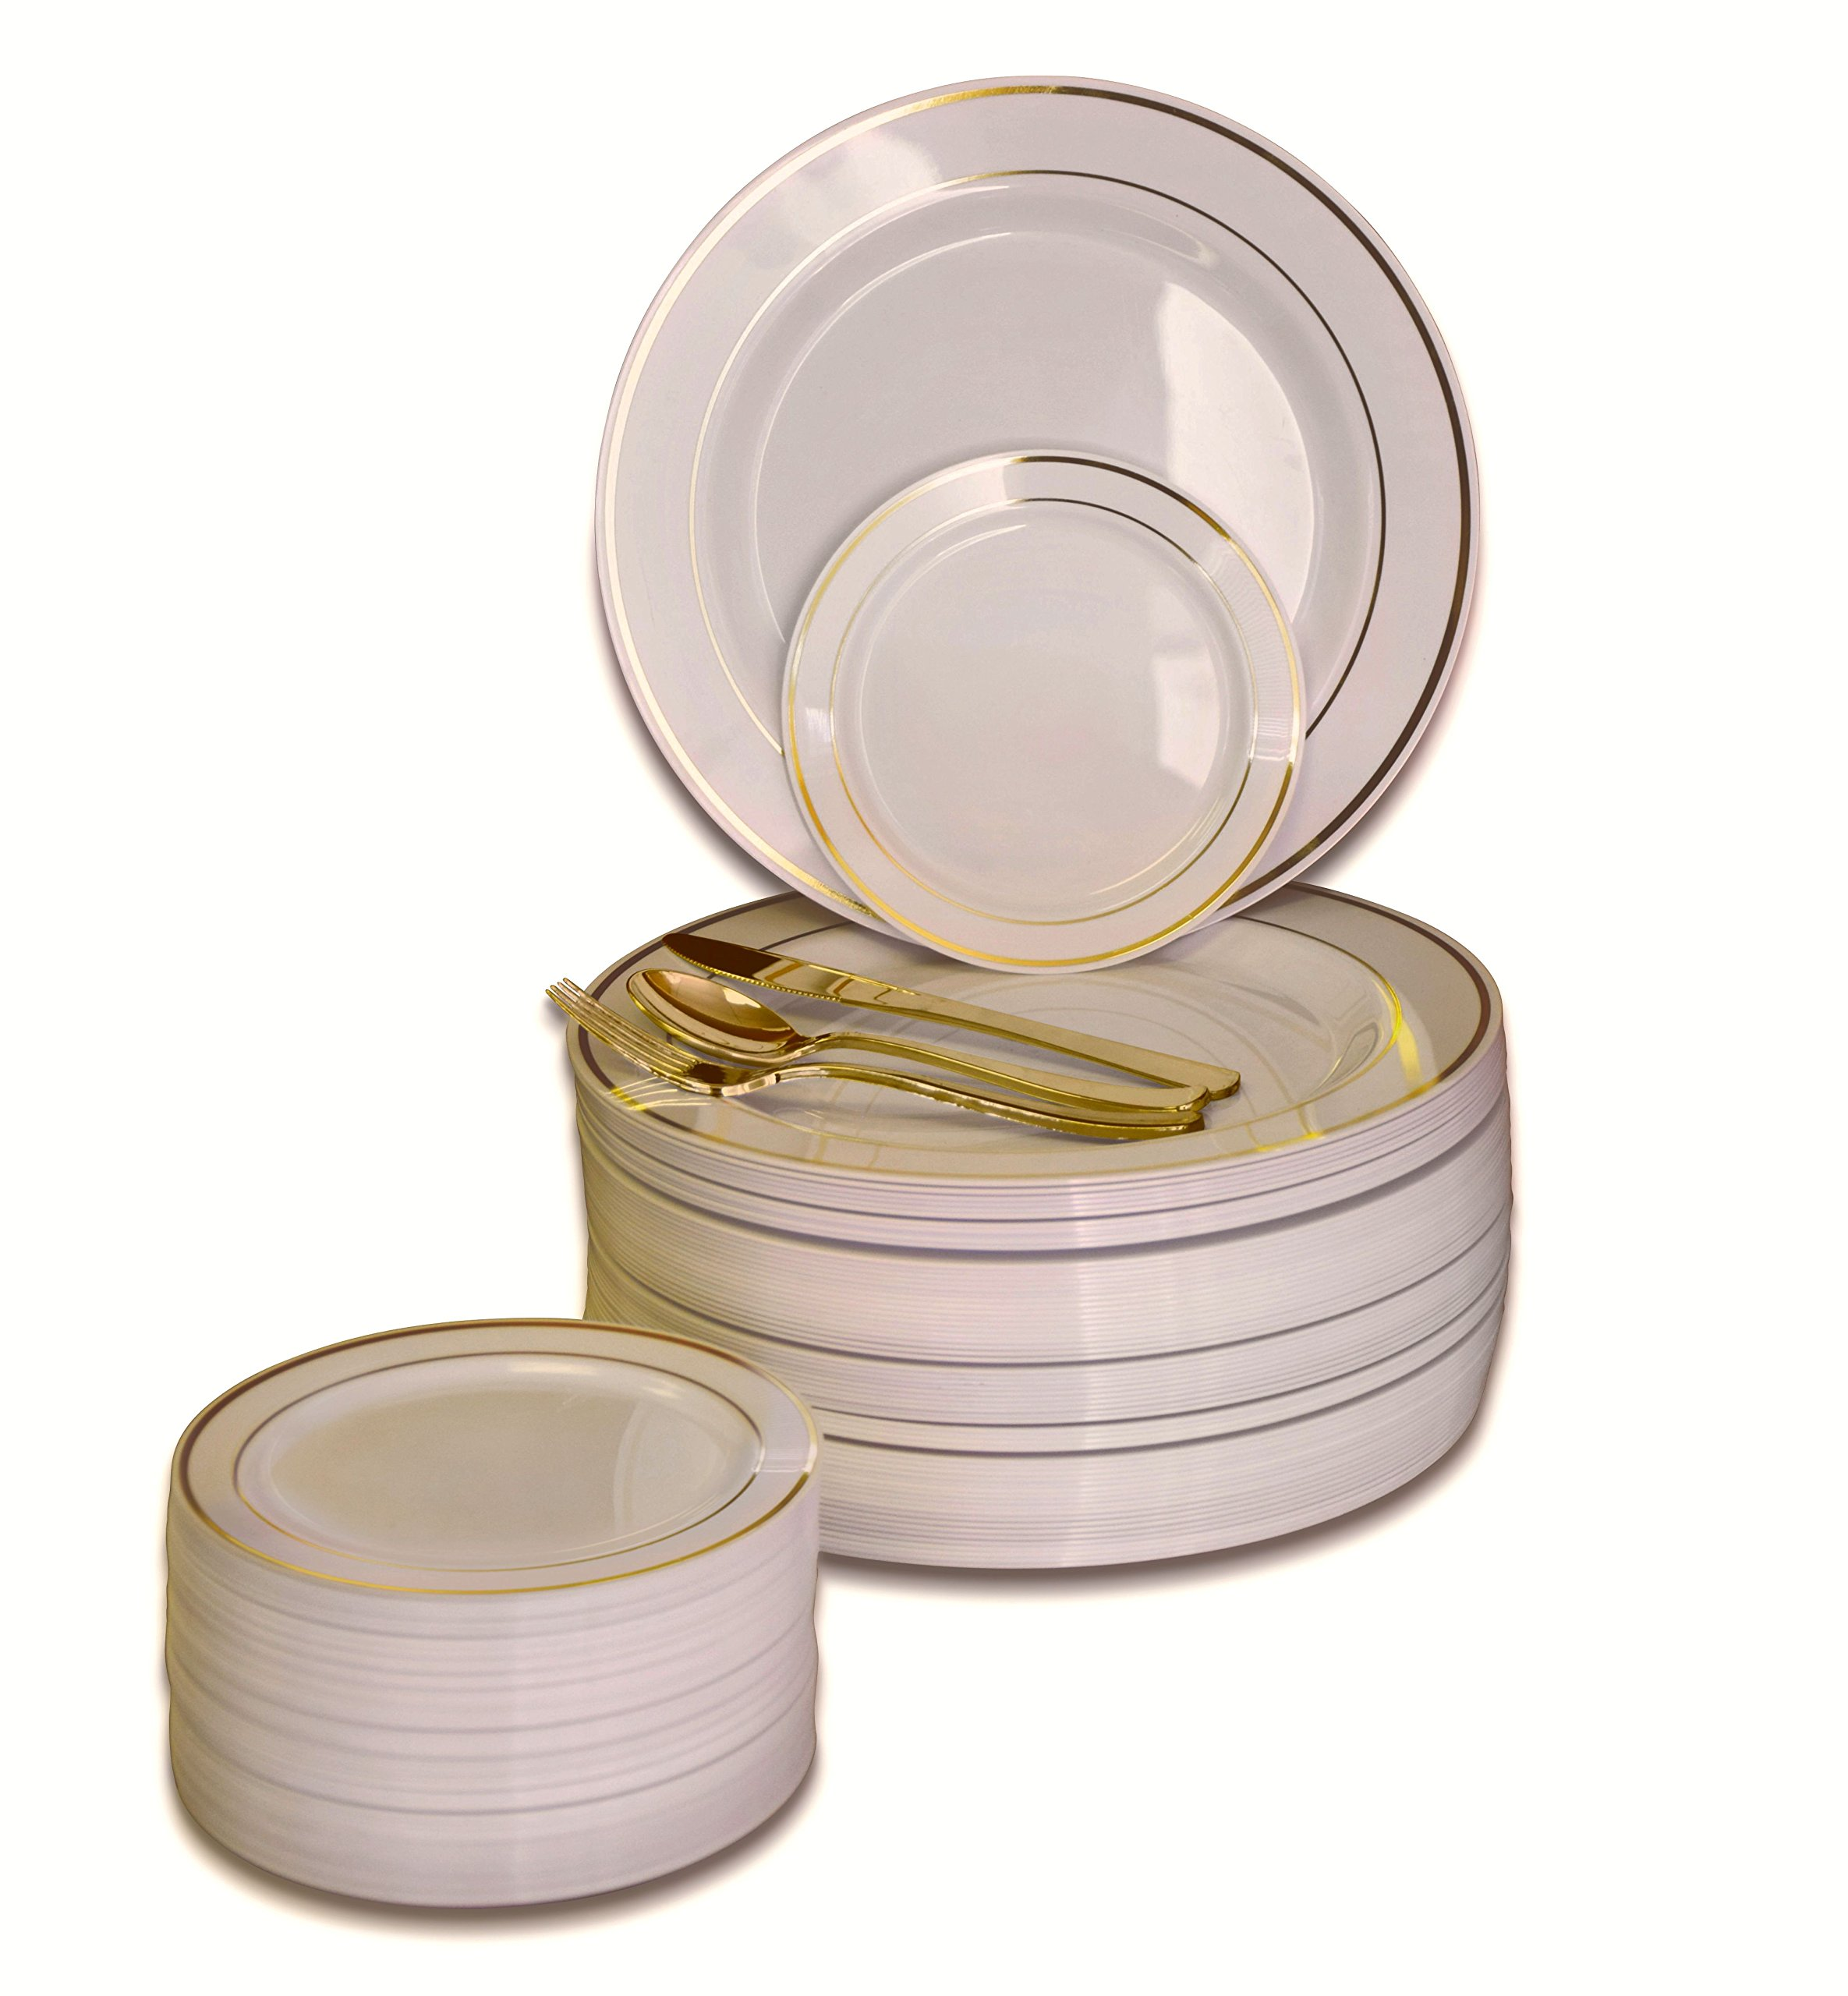 '' OCCASIONS '' 600 PCS / 120 GUEST Wedding Disposable Plastic Plate and Silverware Combo Set , ( Ivory / Gold Rim plates, Gold silverware ) by OCCASIONS FINEST PLASTIC TABLEWARE